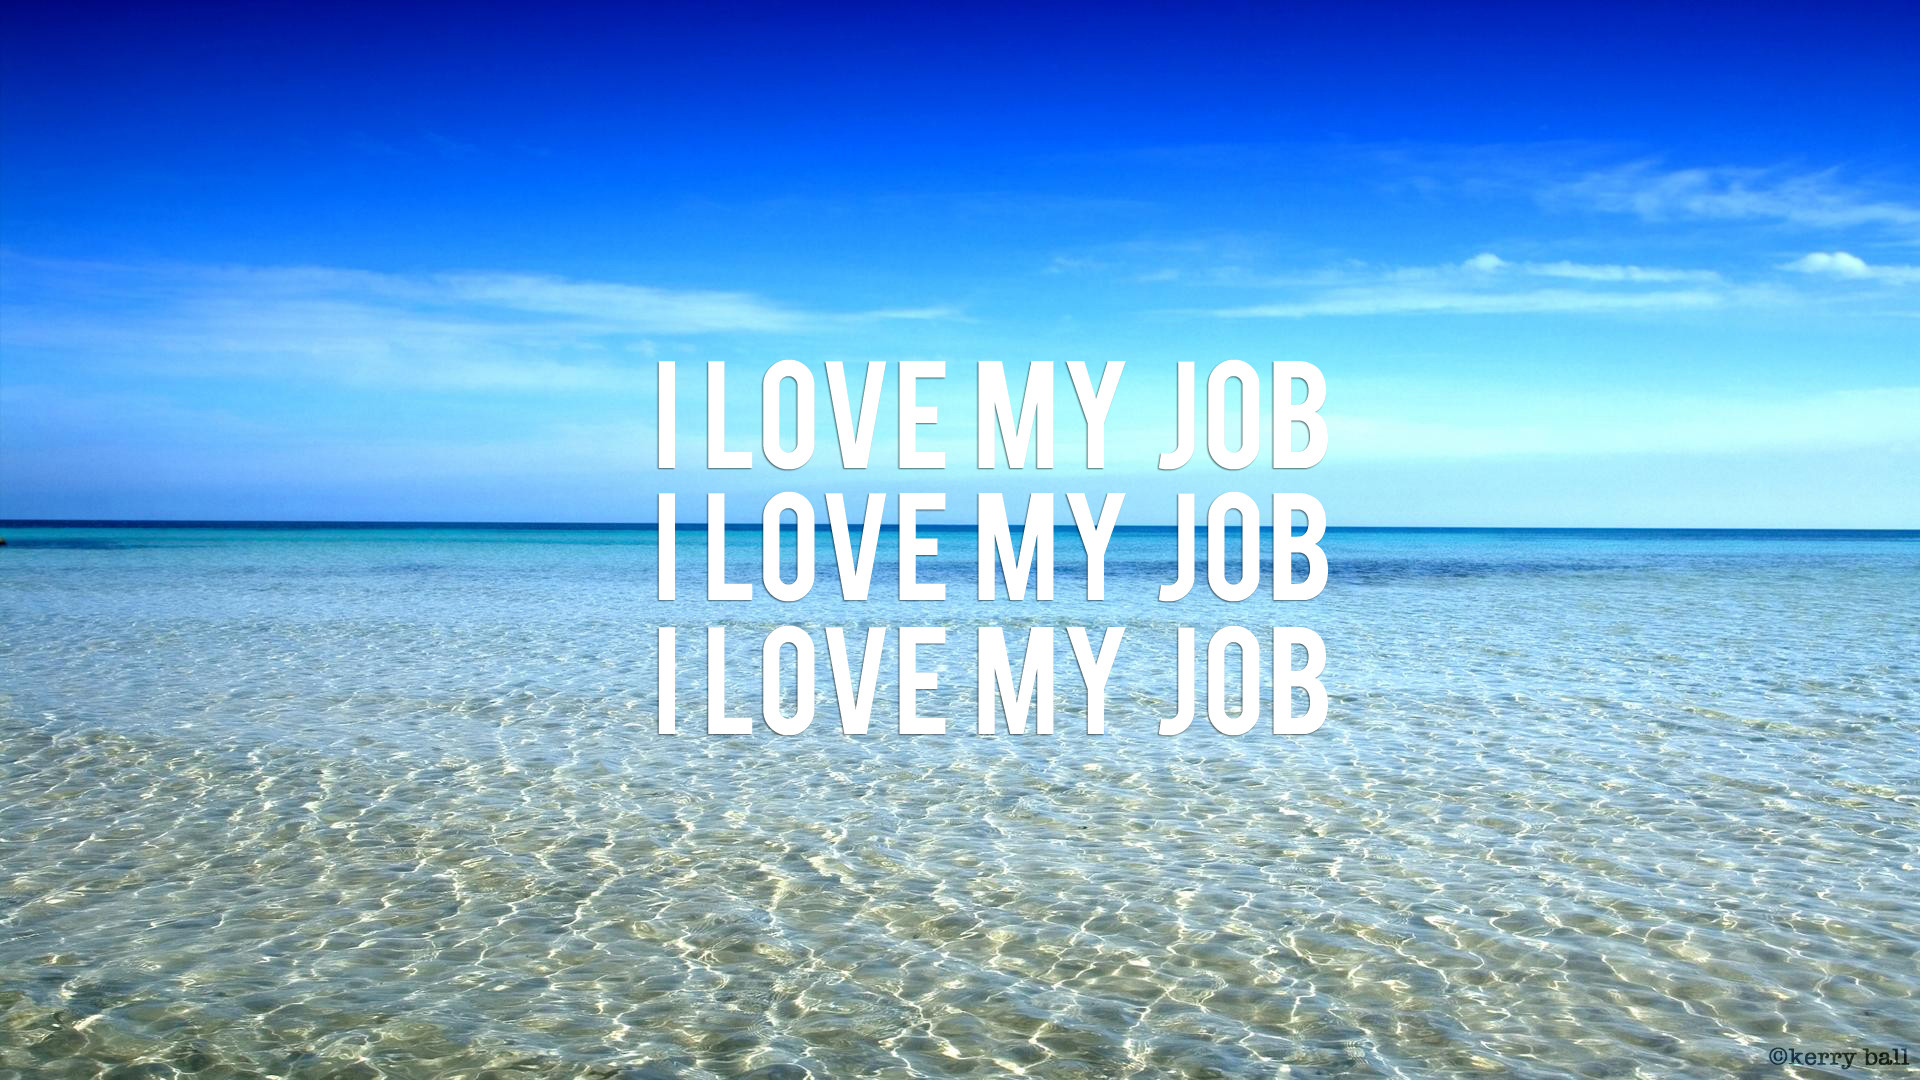 """""""I LOVE MY JOB"""" desktop wallpaper. I made this the other day, for my  computer at work. I wanted something pretty (but amusing) to look at!"""